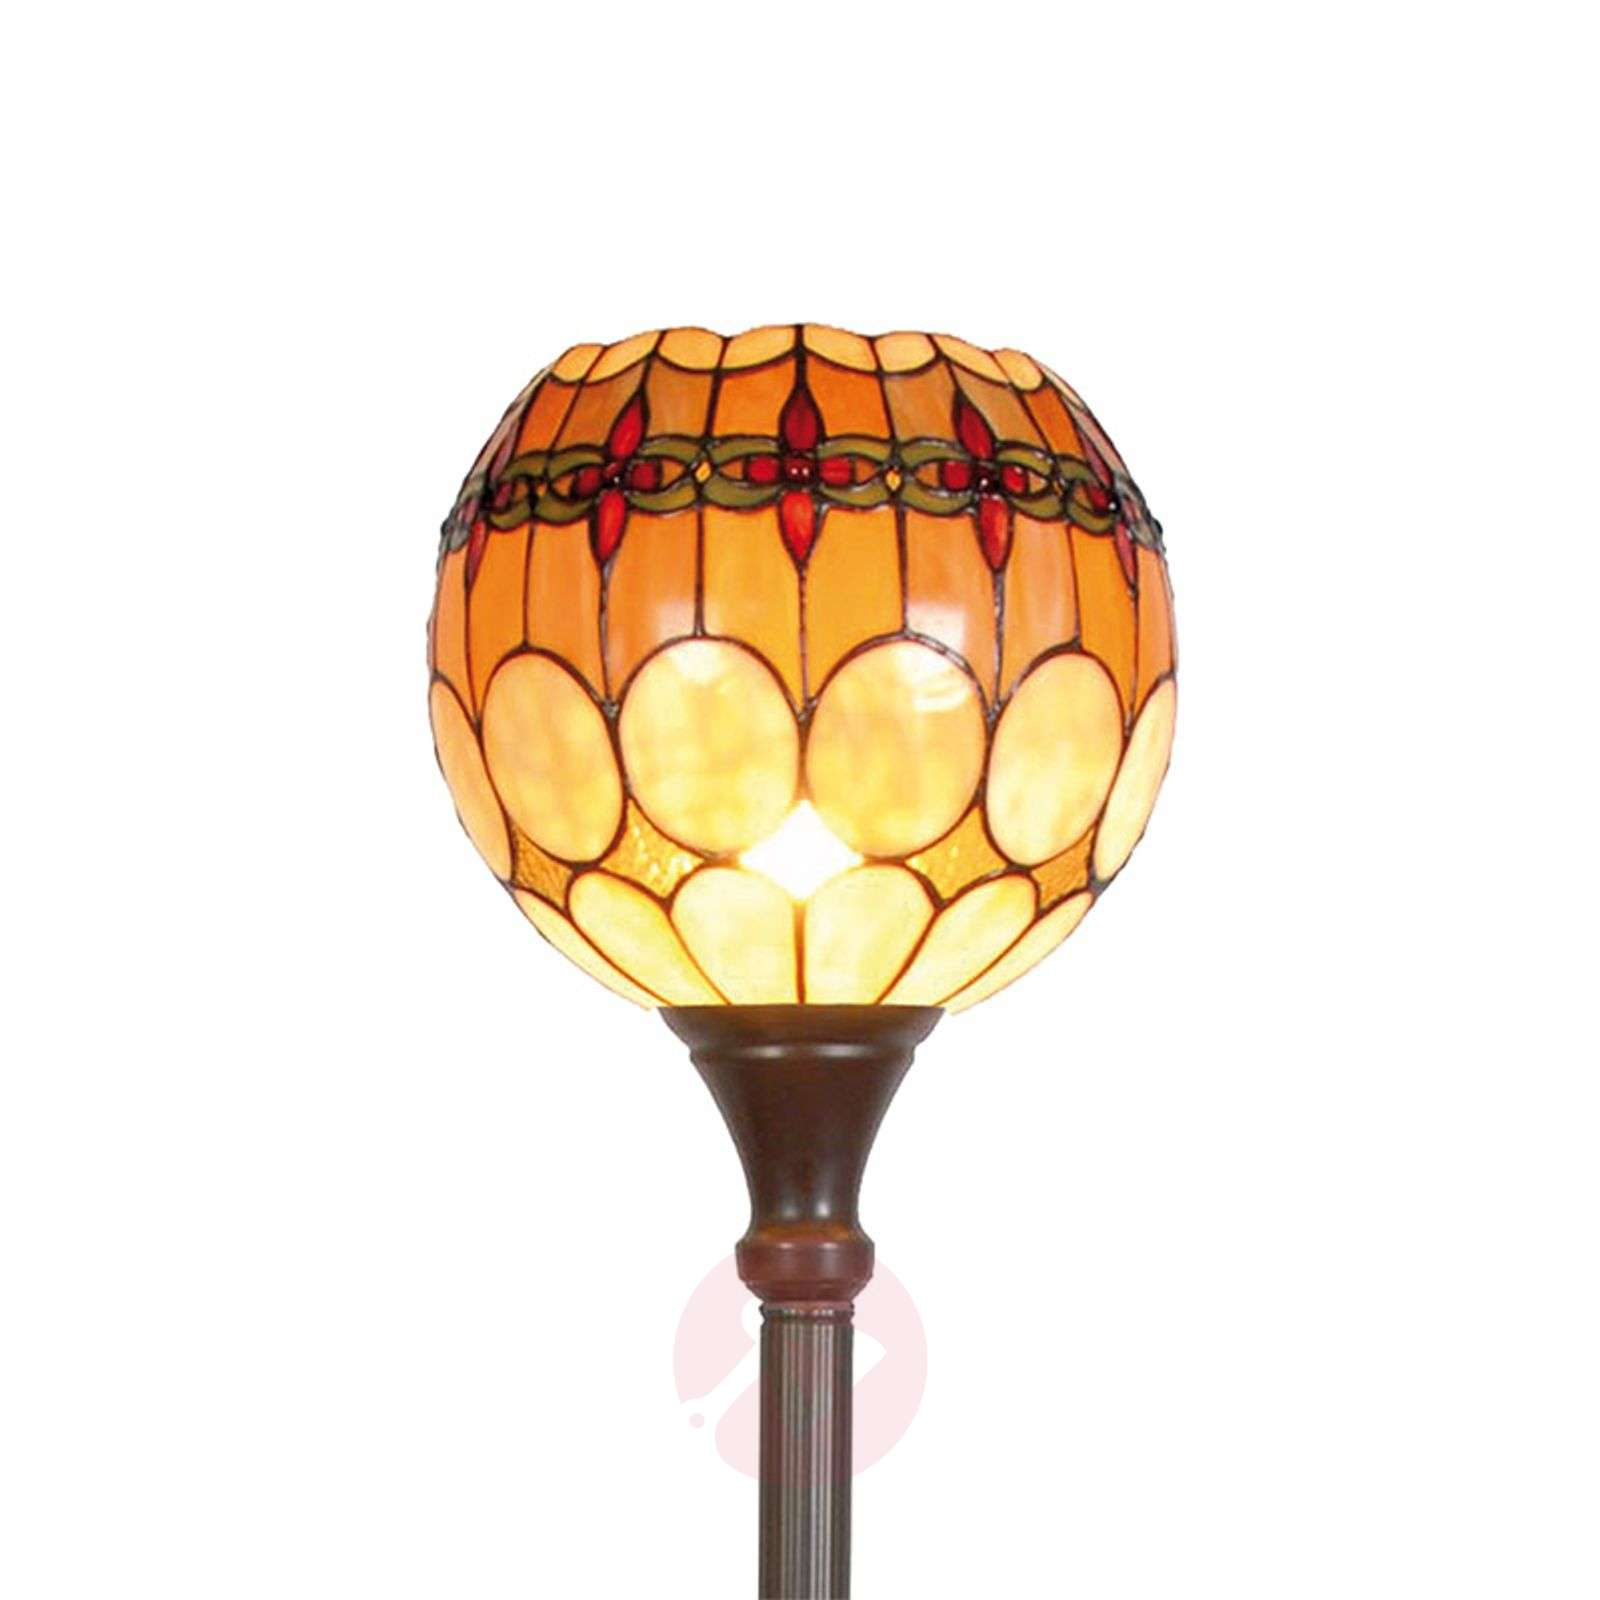 Floor lamp Niley in the Tiffany style-6064234-01